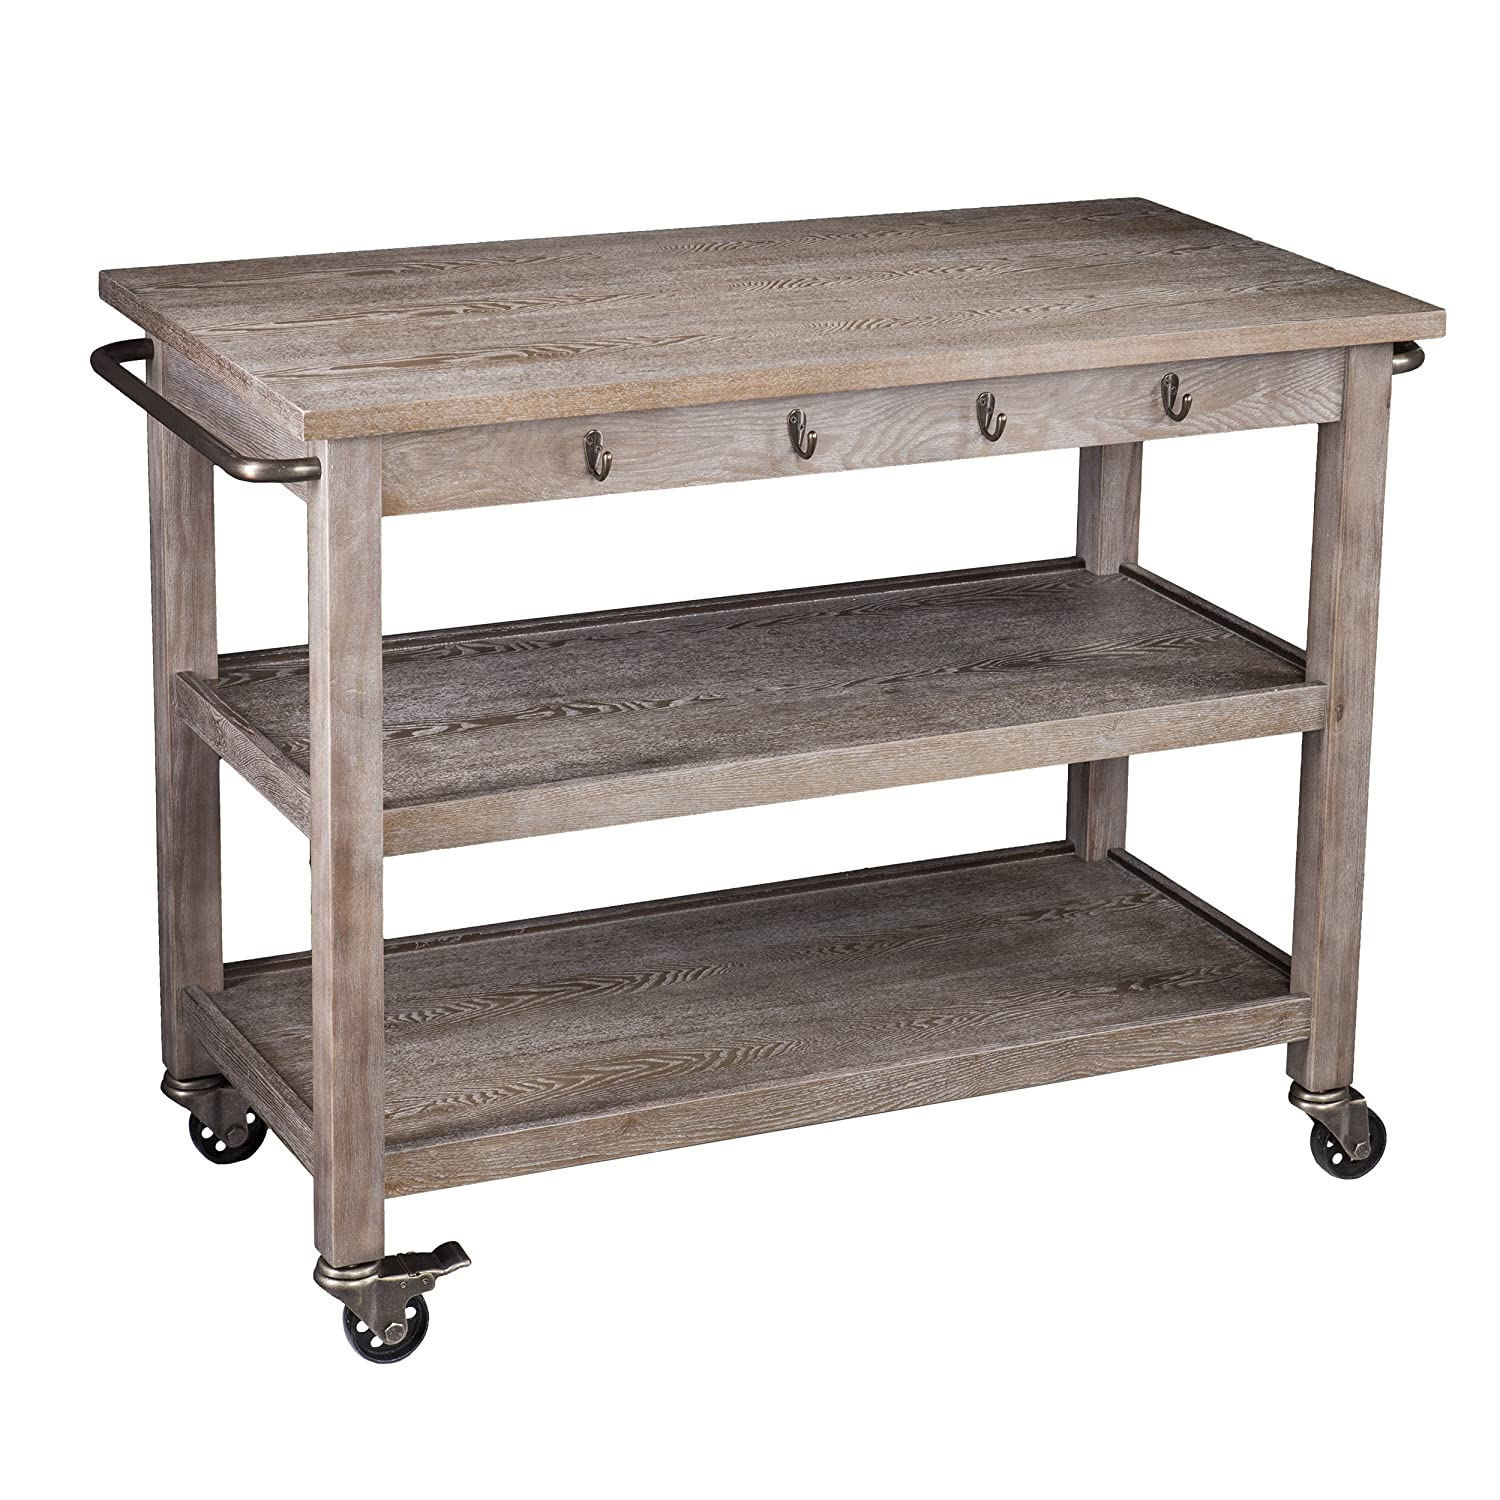 White wash burnt oak kitchen cart